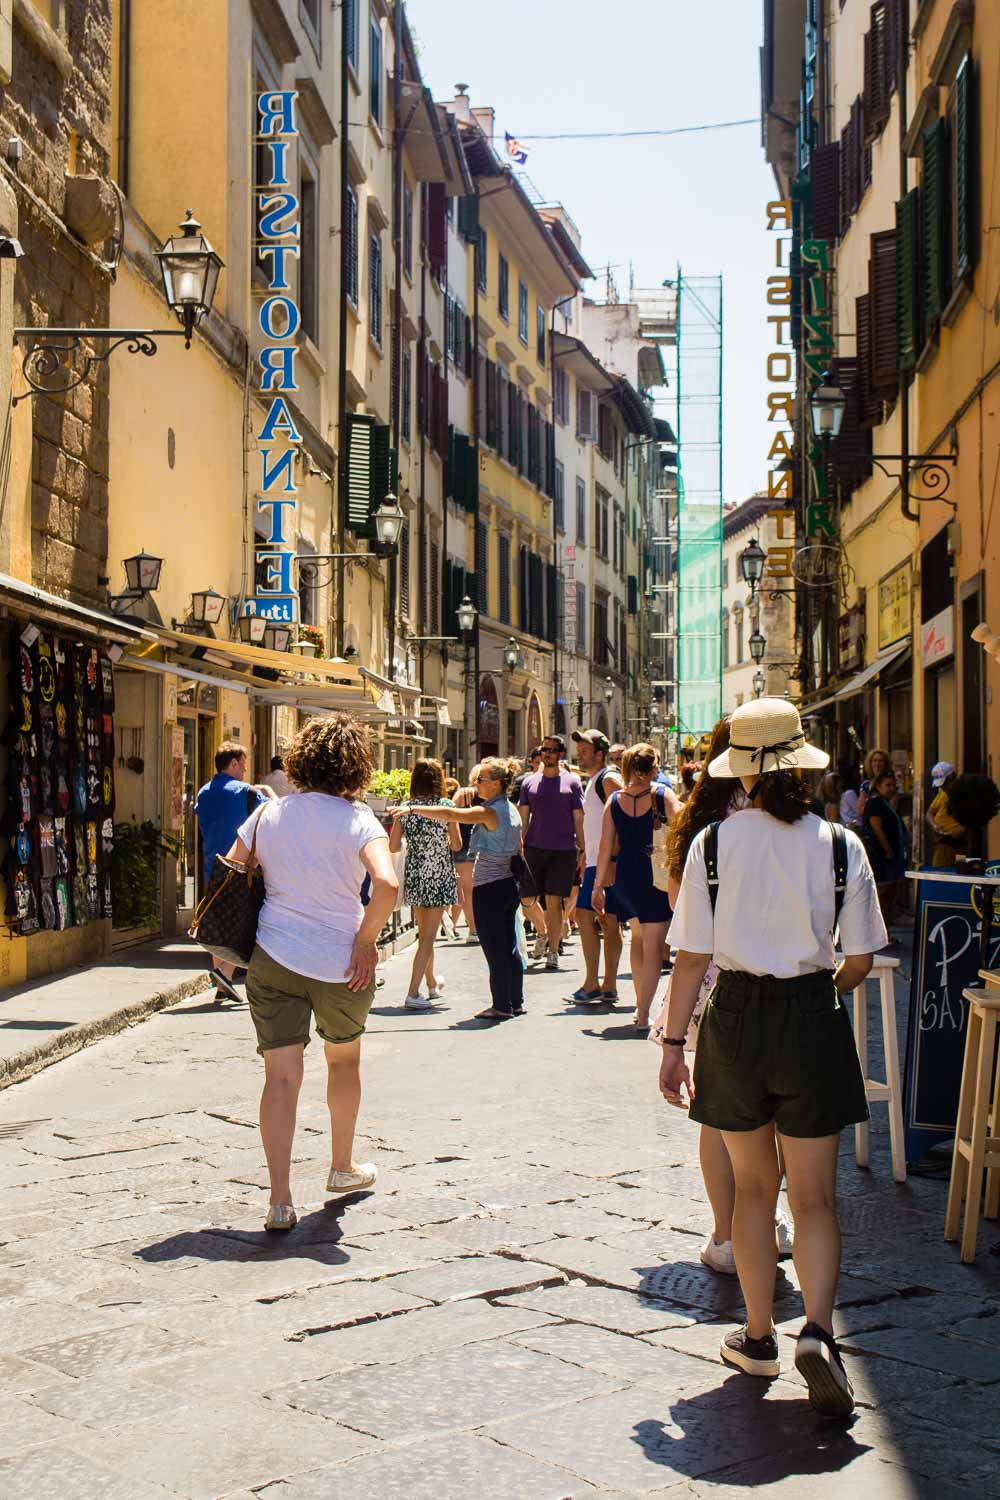 Busy Street Alley in the city of Florence, Italy